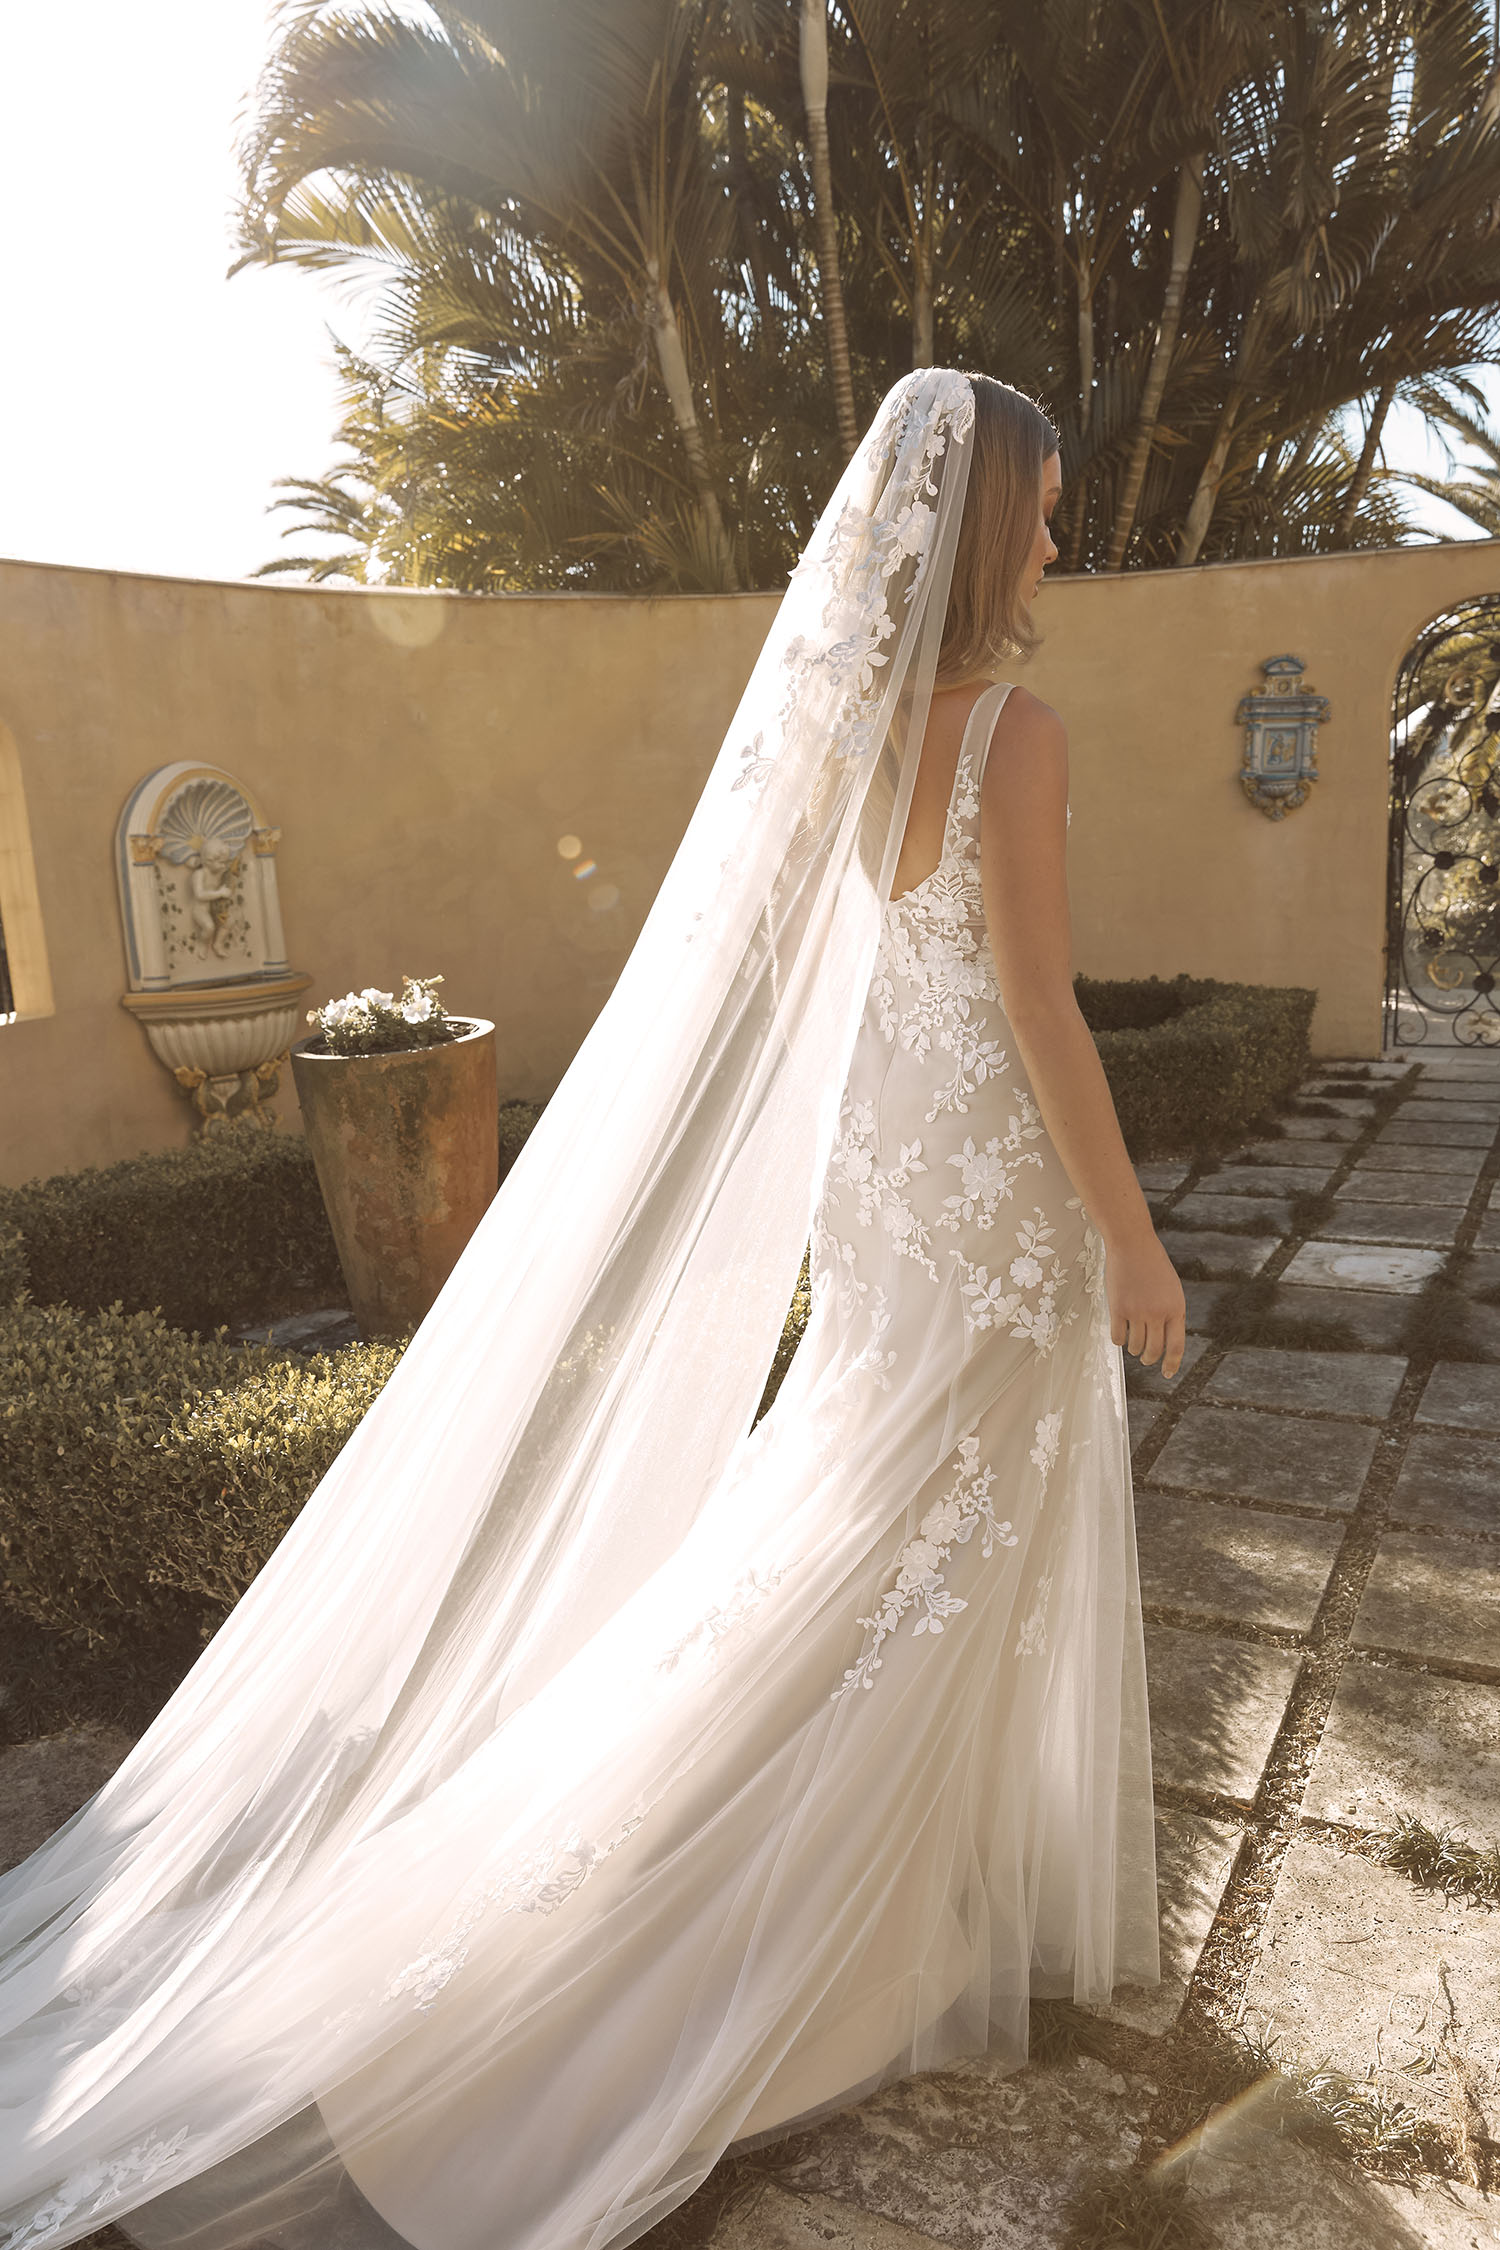 BLAYNE VEIL V987 CATHEDRAL LENGTH WITH LACE APPLIQUES PAIRED WITH GOWN ML19487 VEIL MADI LANE BRIDAL1